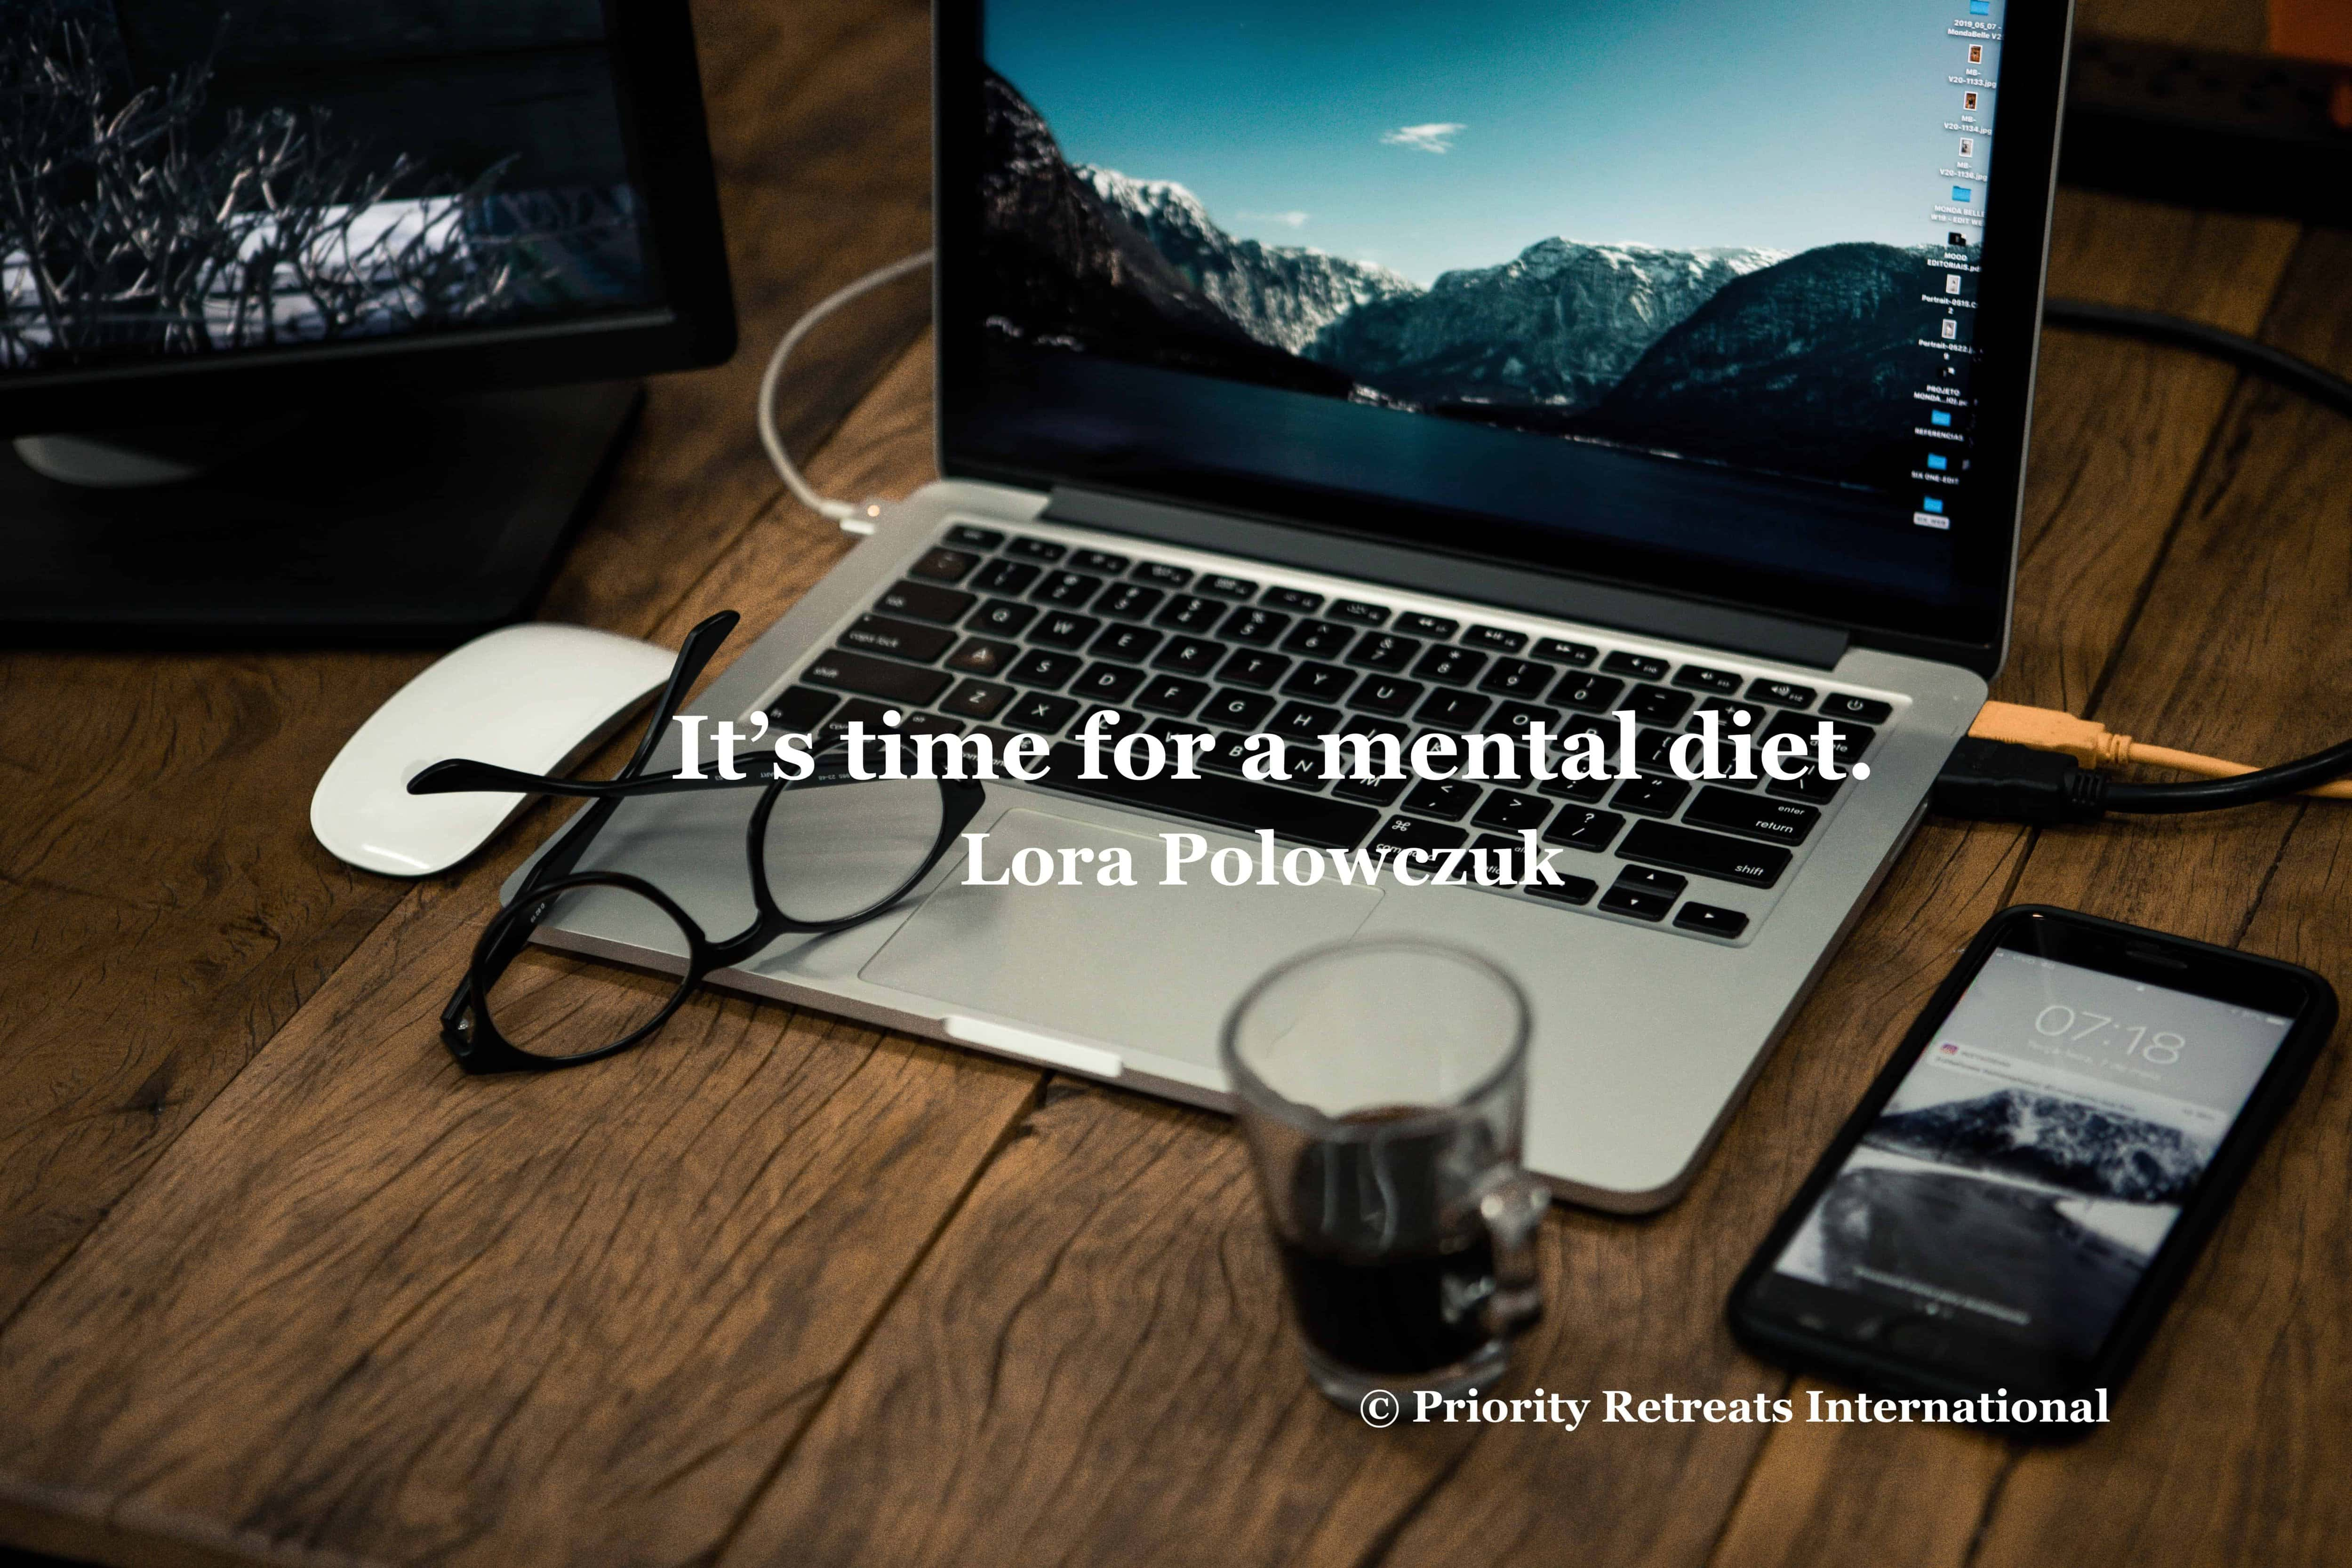 You need a mental diet